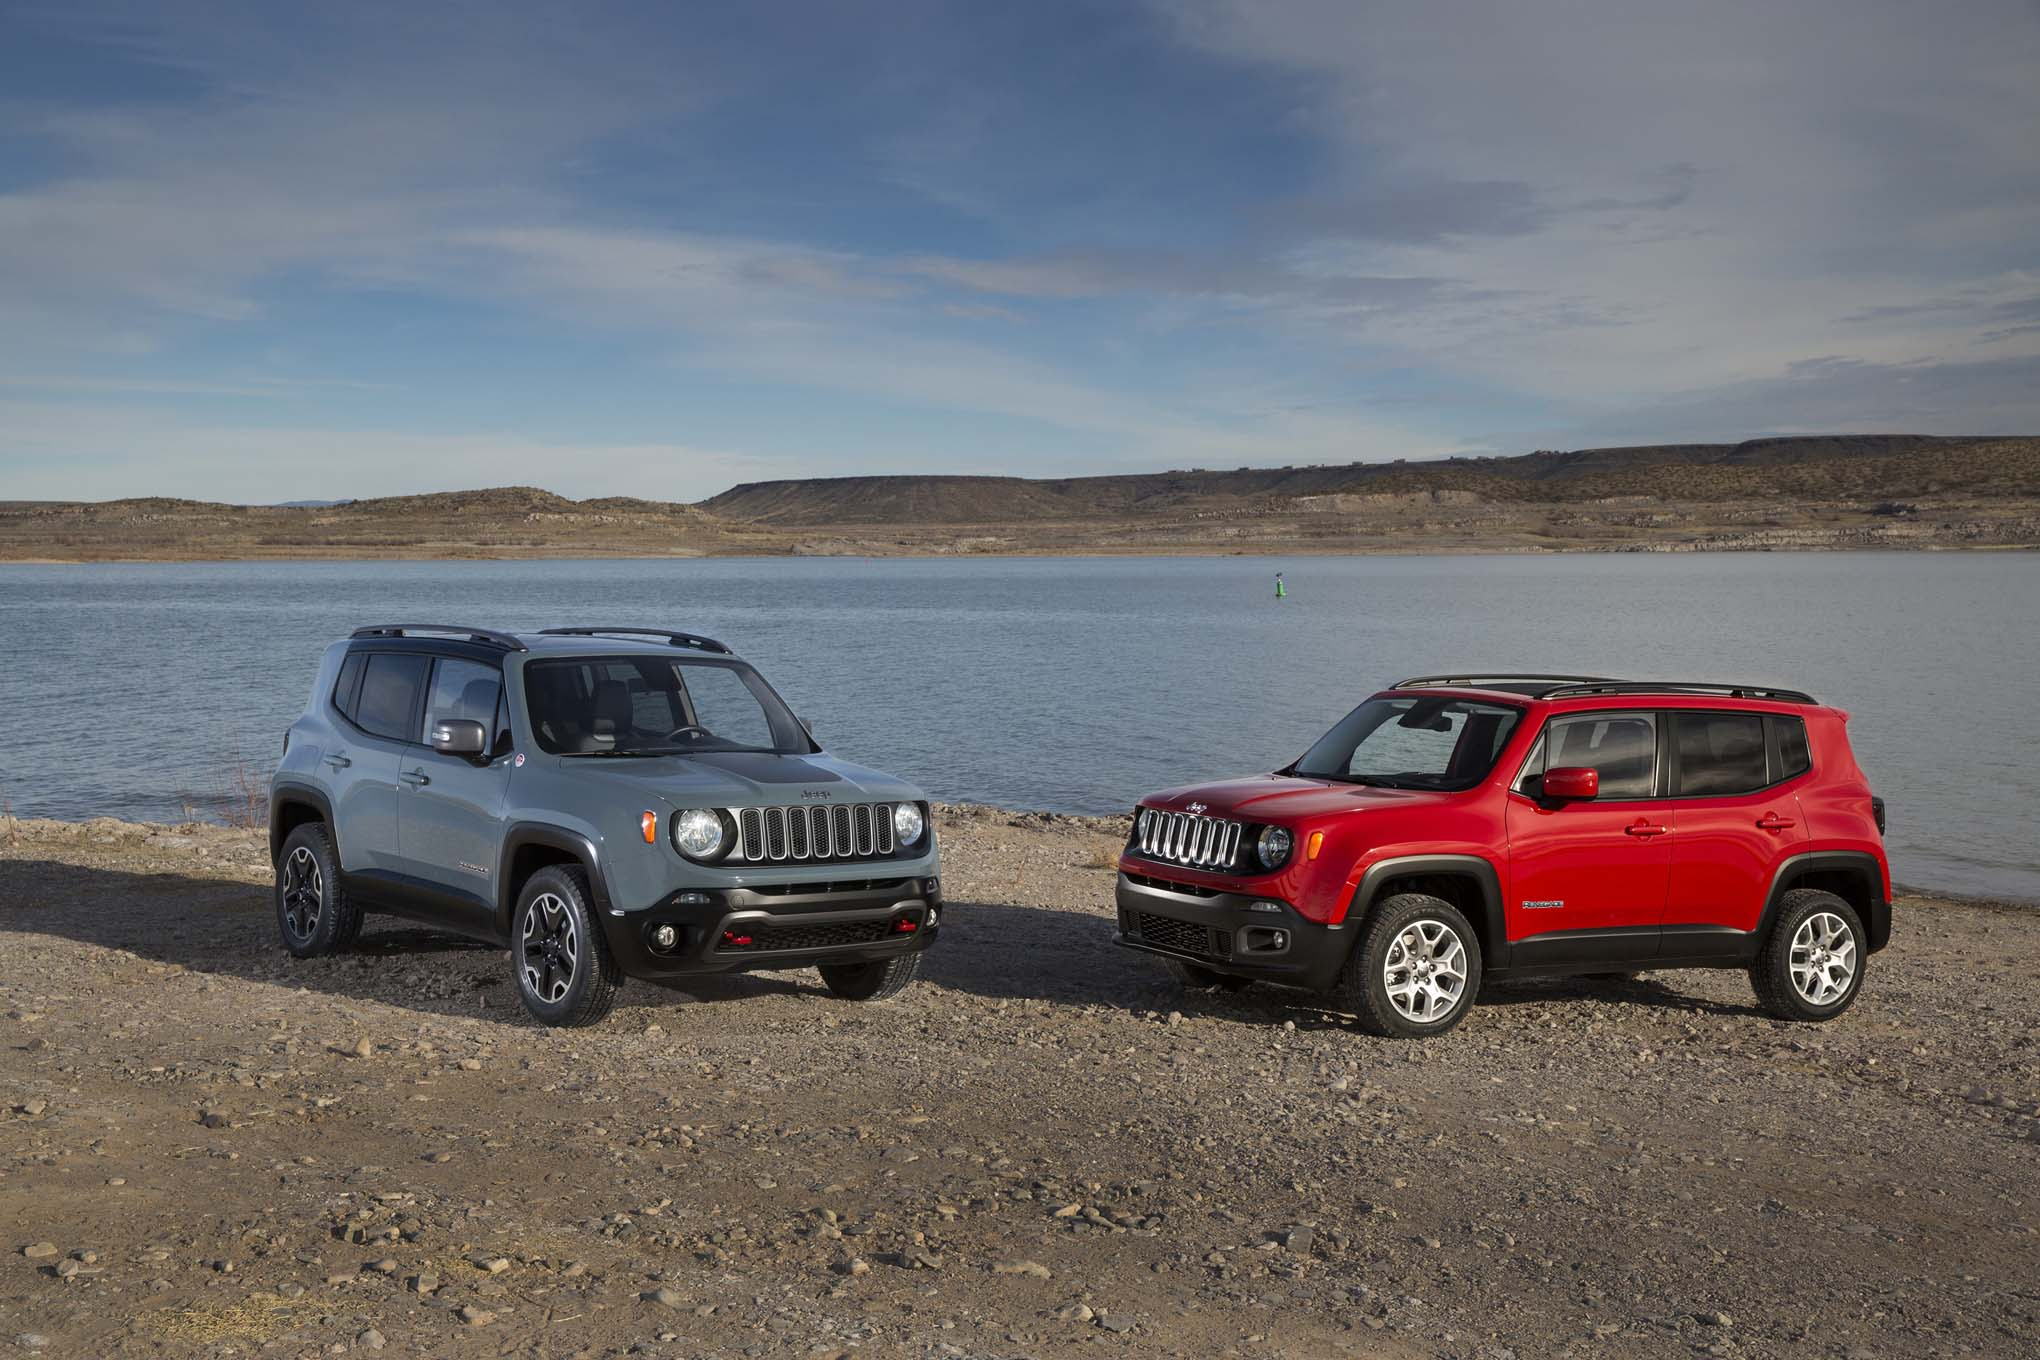 2015 Jeep Renegade Trailhawk 2015 Jeep Renegade latitude front three quarter